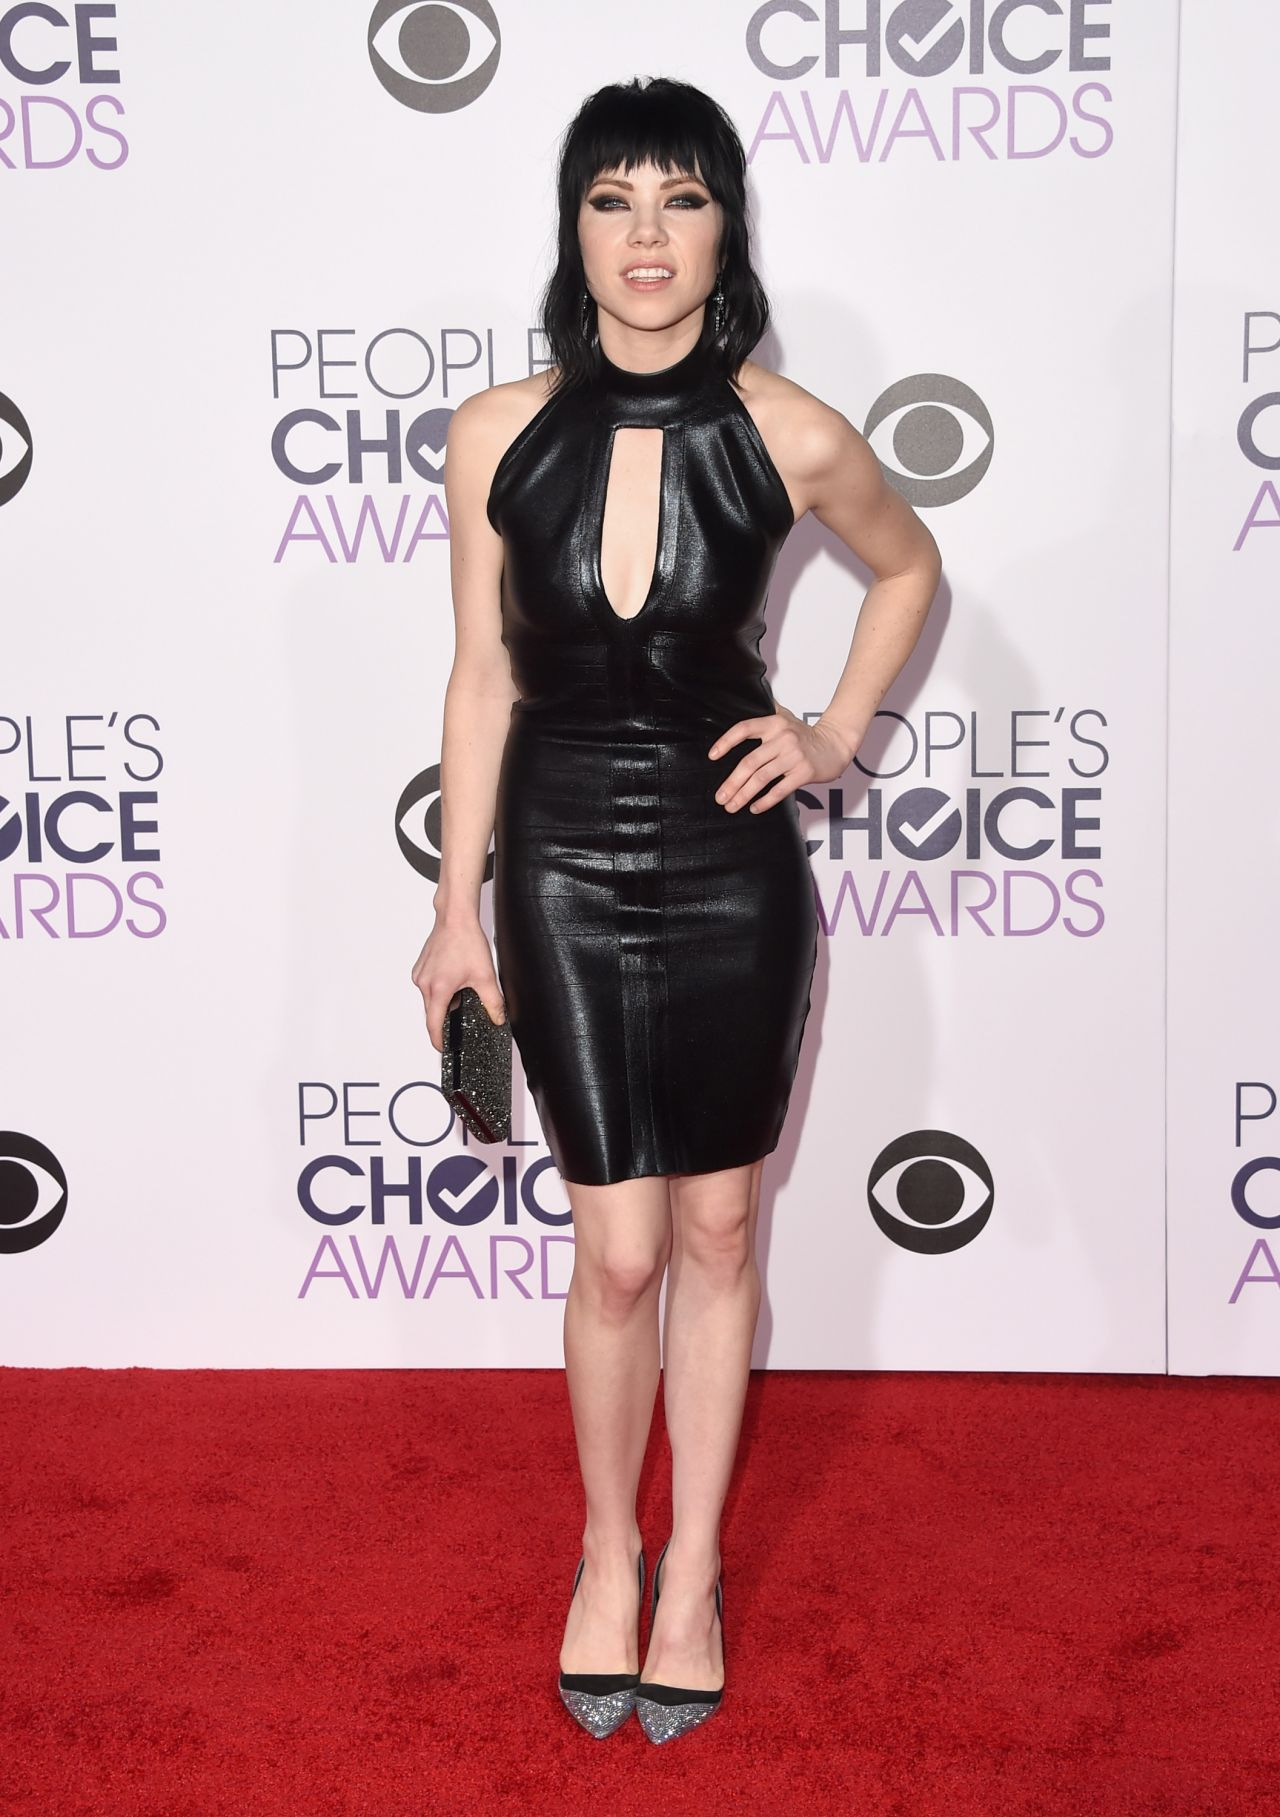 carly-rae-jepsen-2016-people-s-choice-awards-in-microsoft-theater-in-los-angeles-1